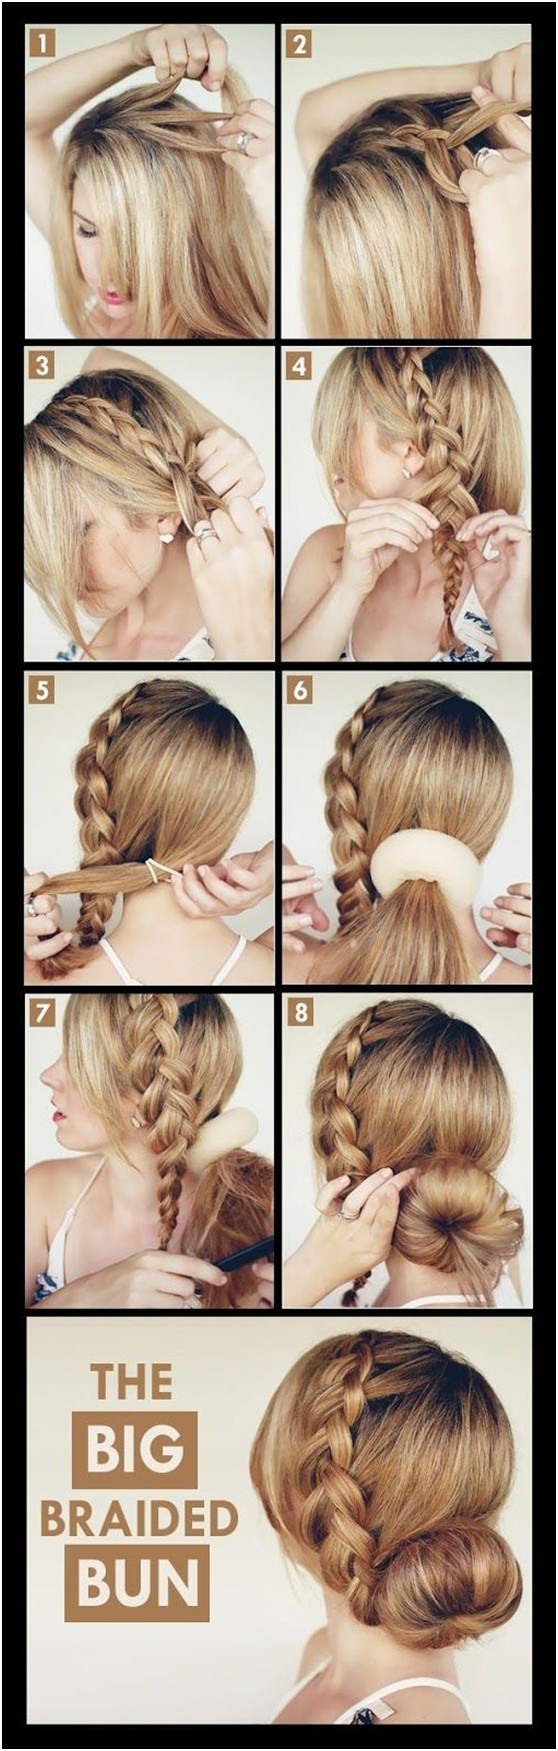 Superb 15 Braided Updo Hairstyles Tutorials Pretty Designs Hairstyle Inspiration Daily Dogsangcom